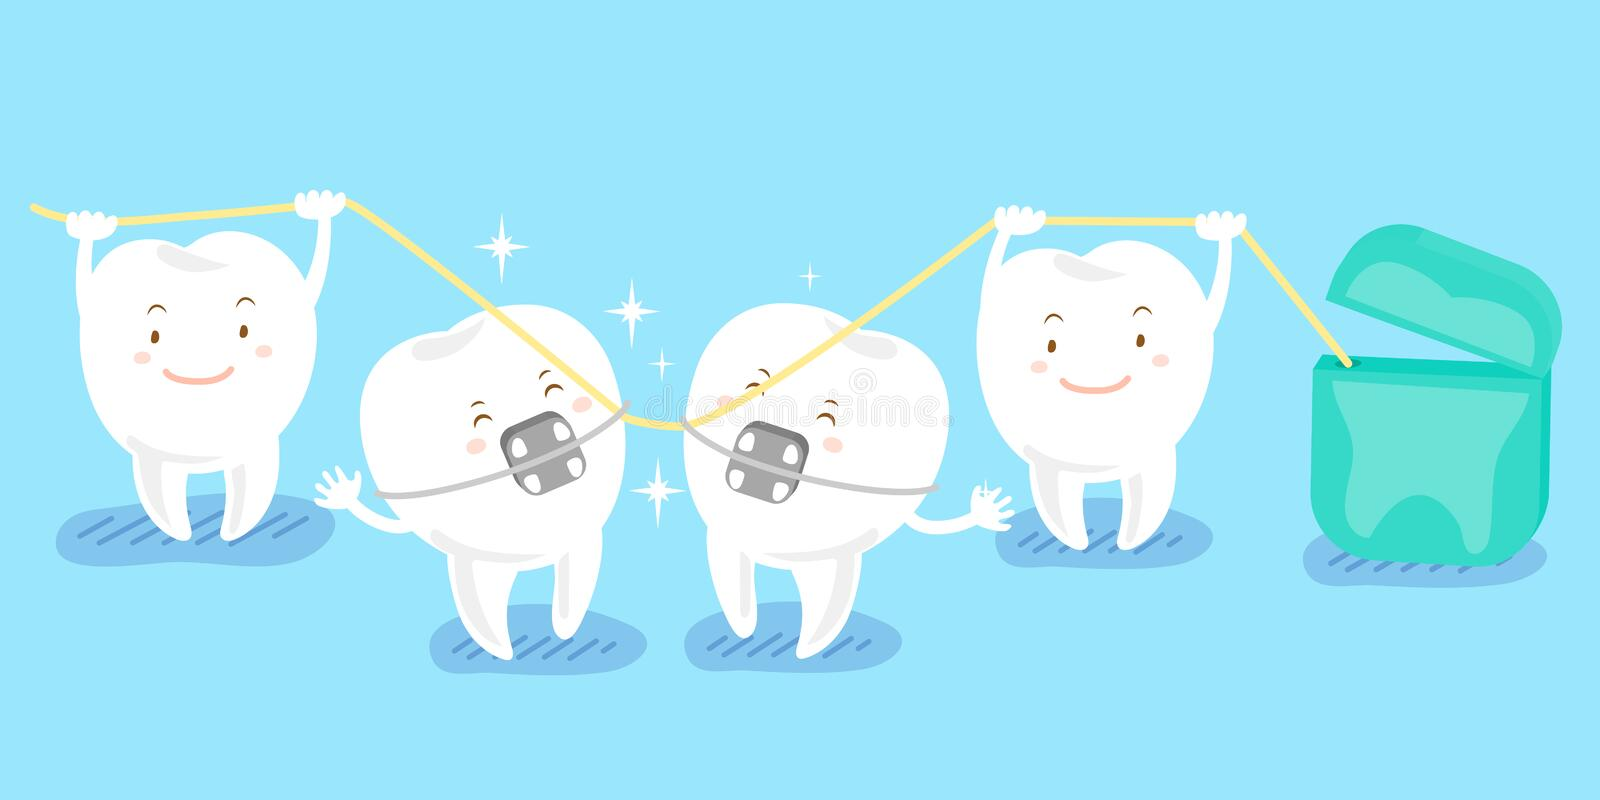 Cartoon tooth playing with floss. Cute cartoon tooth playing with floss happily vector illustration